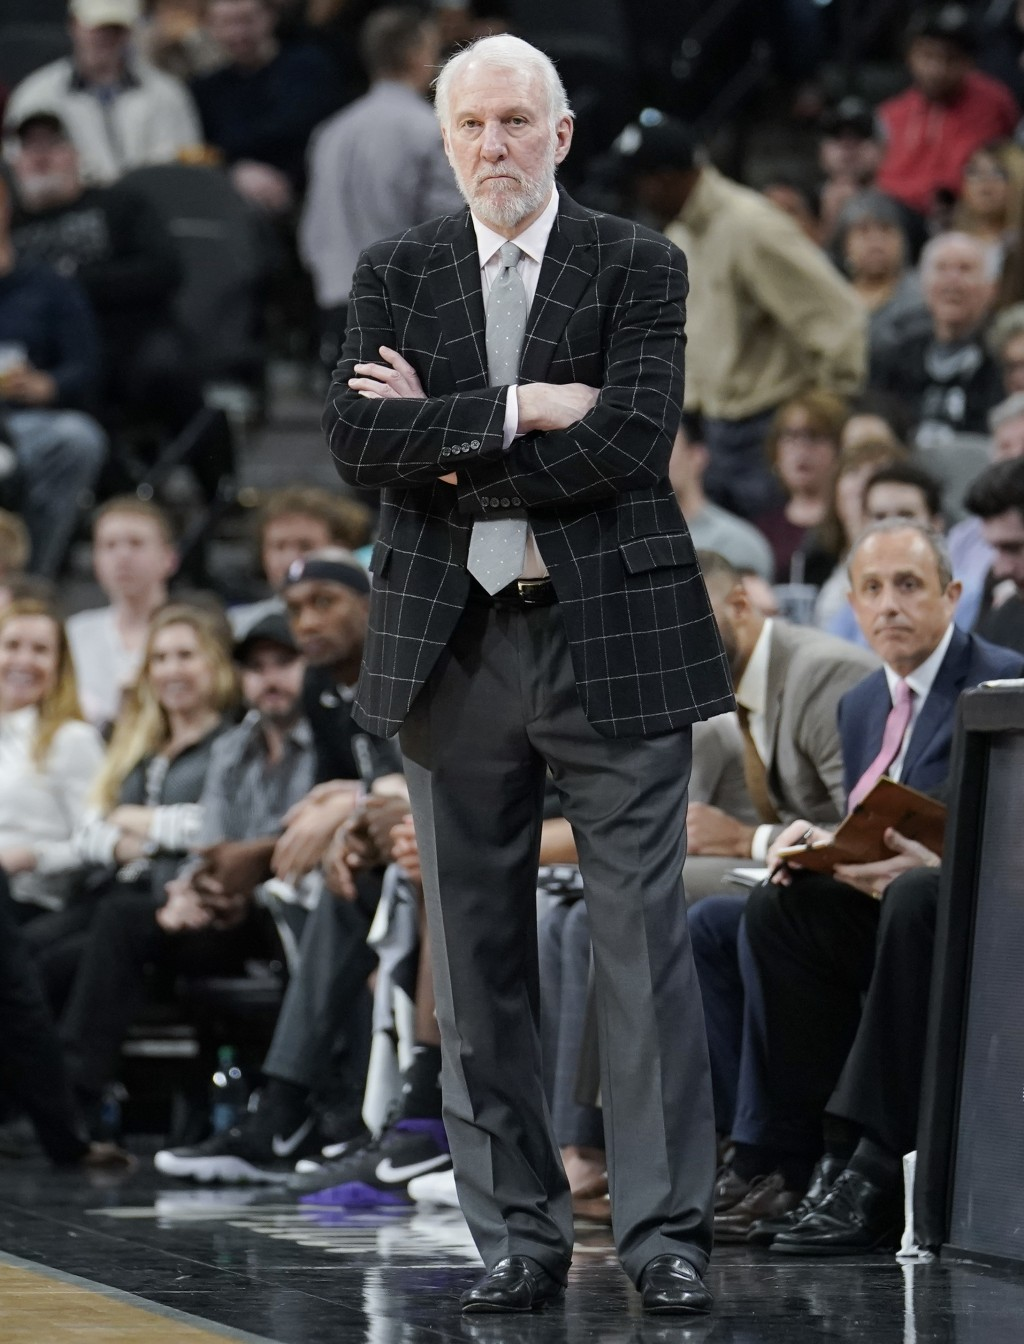 San Antonio Spurs coach Gregg Popovich watches play during the second half of the team's NBA basketball game against the Denver Nuggets, Wednesday, De...